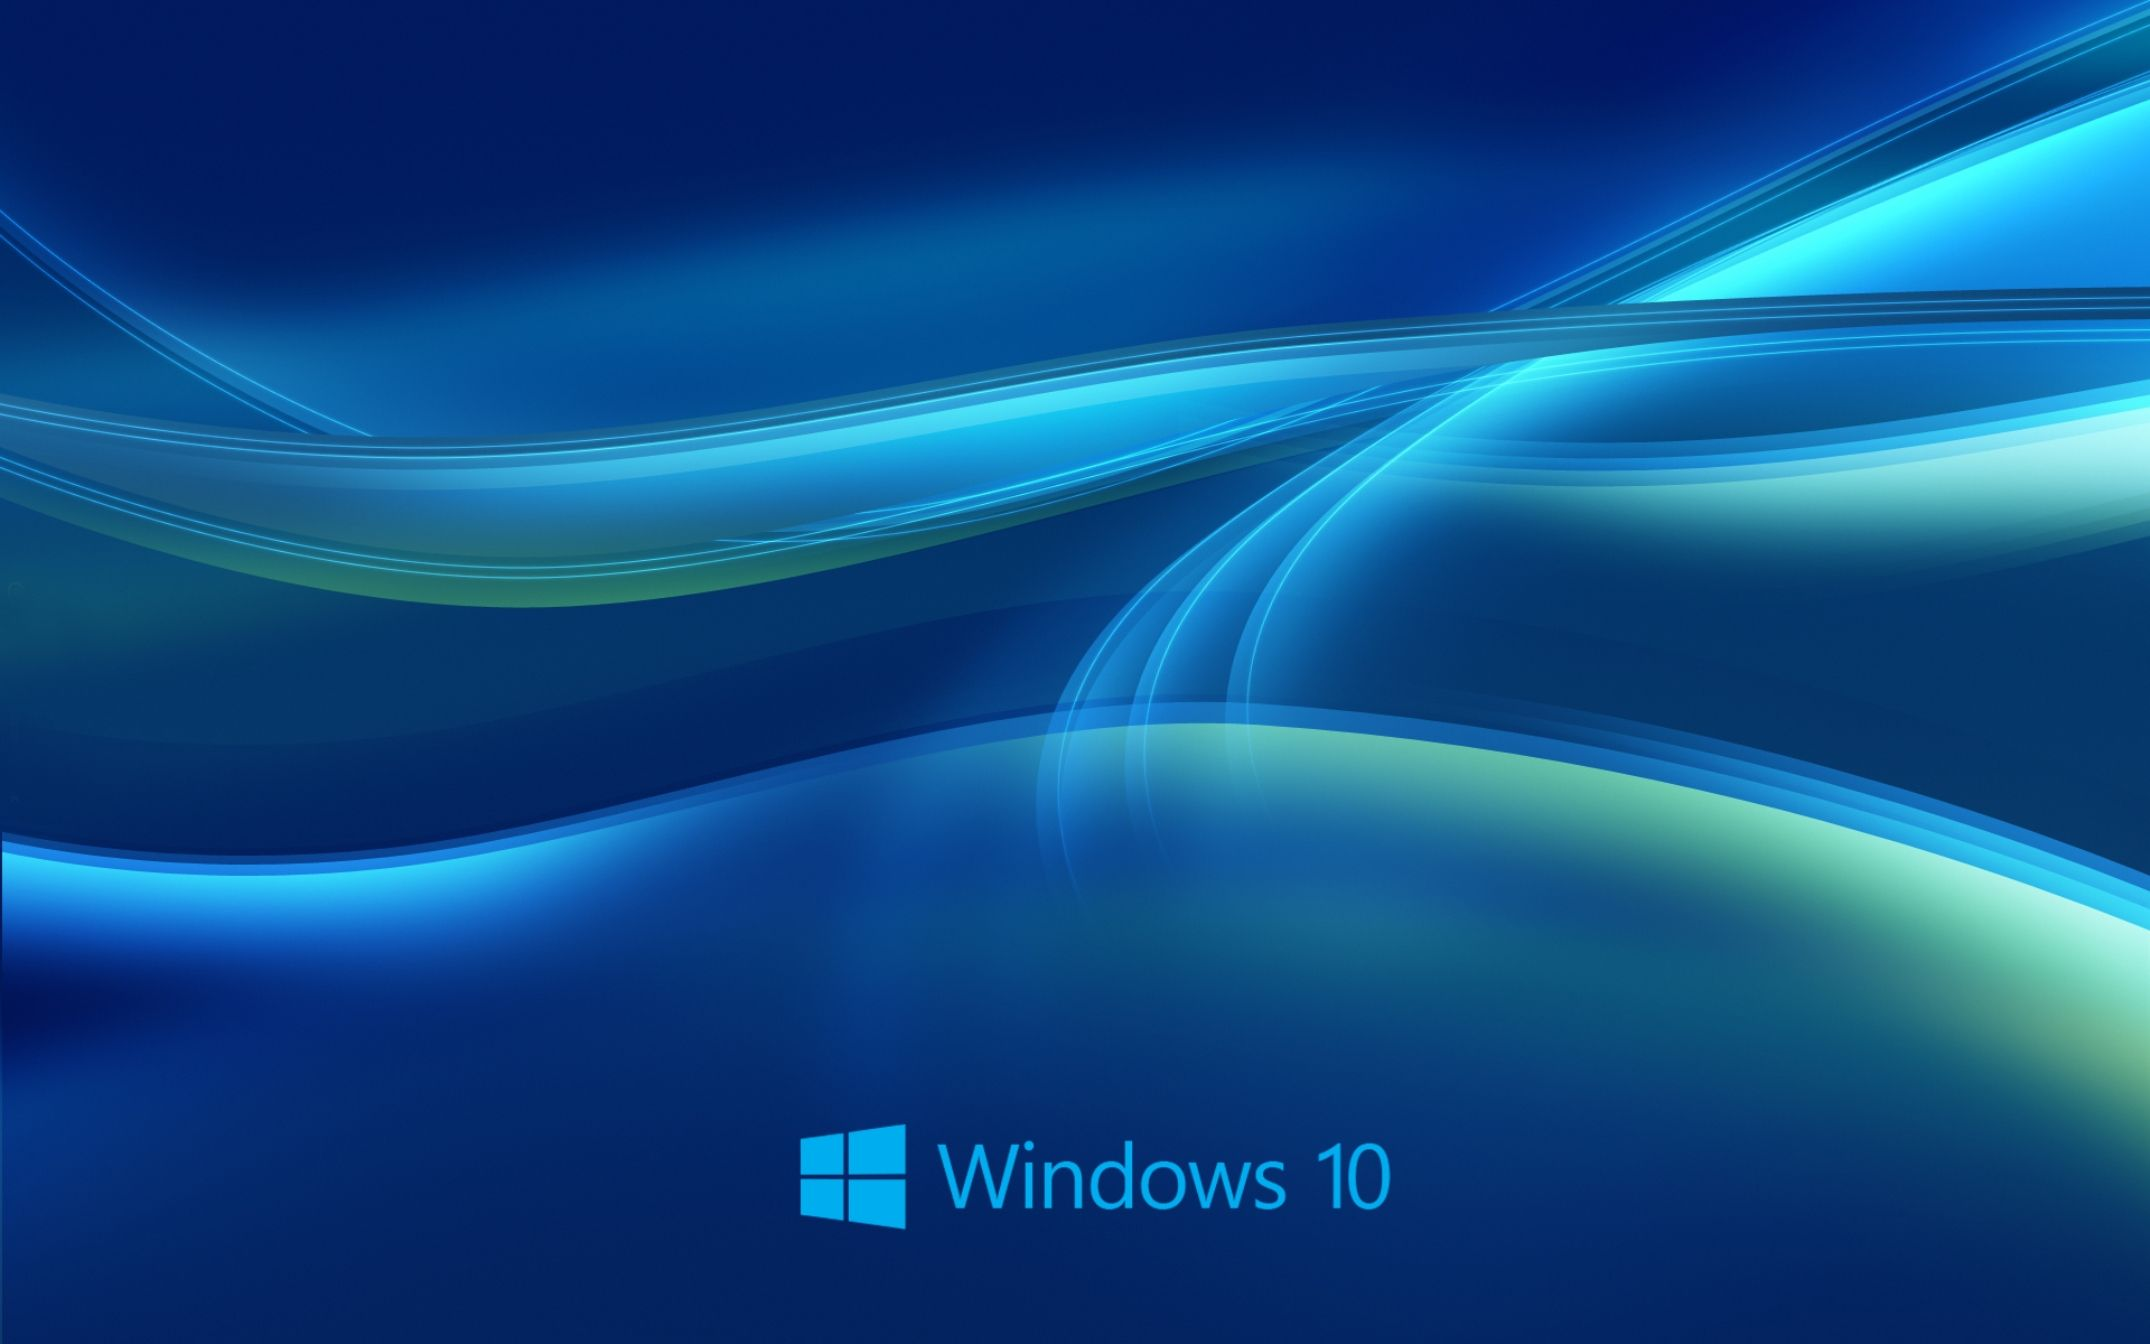 Windows 10 Full HD Wallpaper Windows 10 background